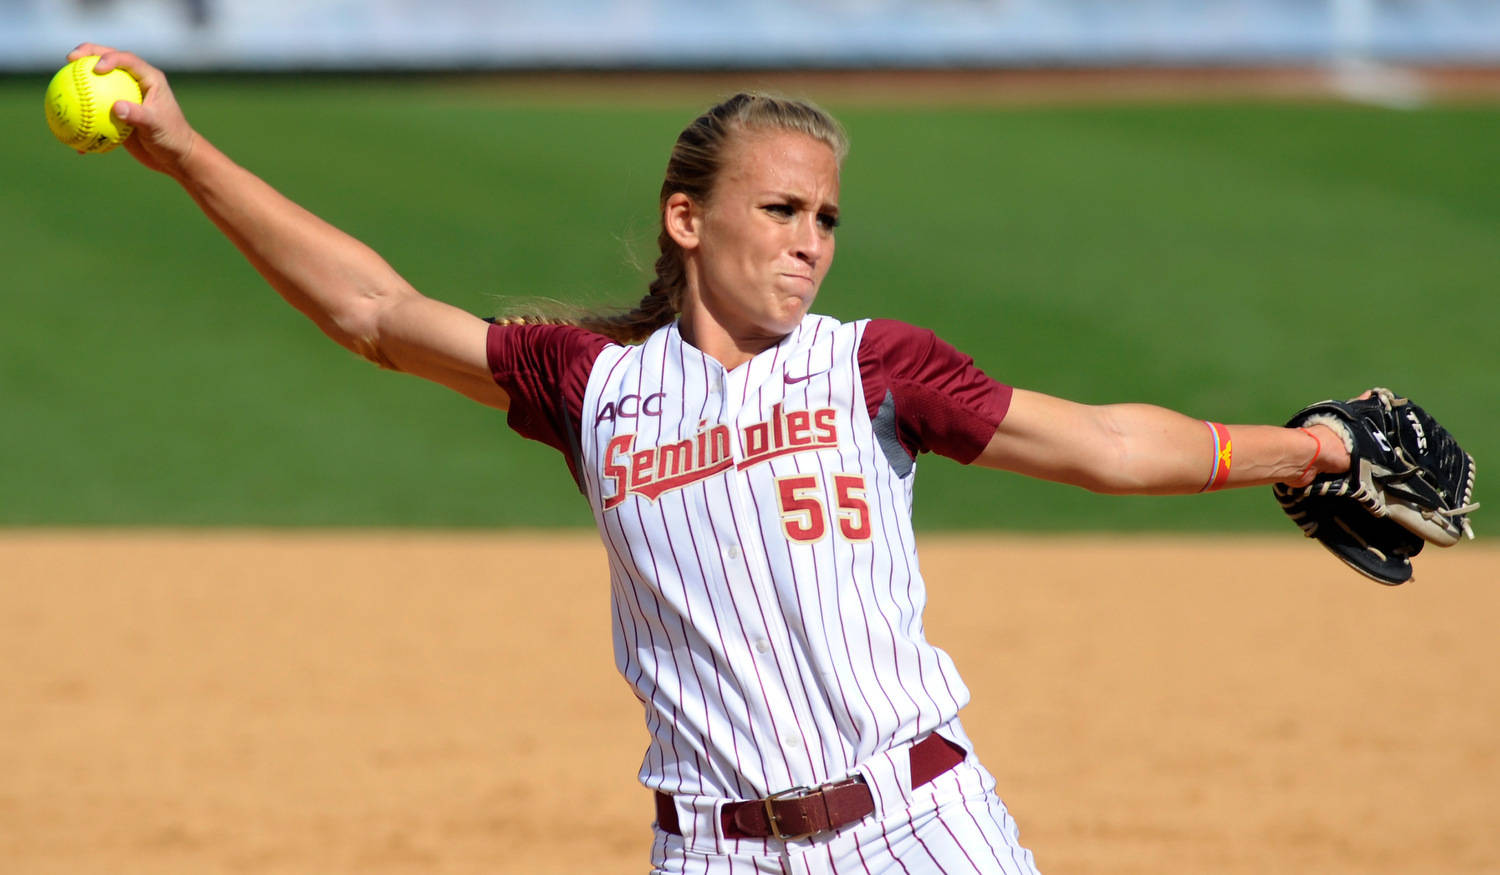 Florida State's Monica Perry (55) pitches during the ACC Softball Championship Quarterfinals May 10, 2012 in Chapel Hill, N.C. (Photo by Sara D. Davis/theACC.com)